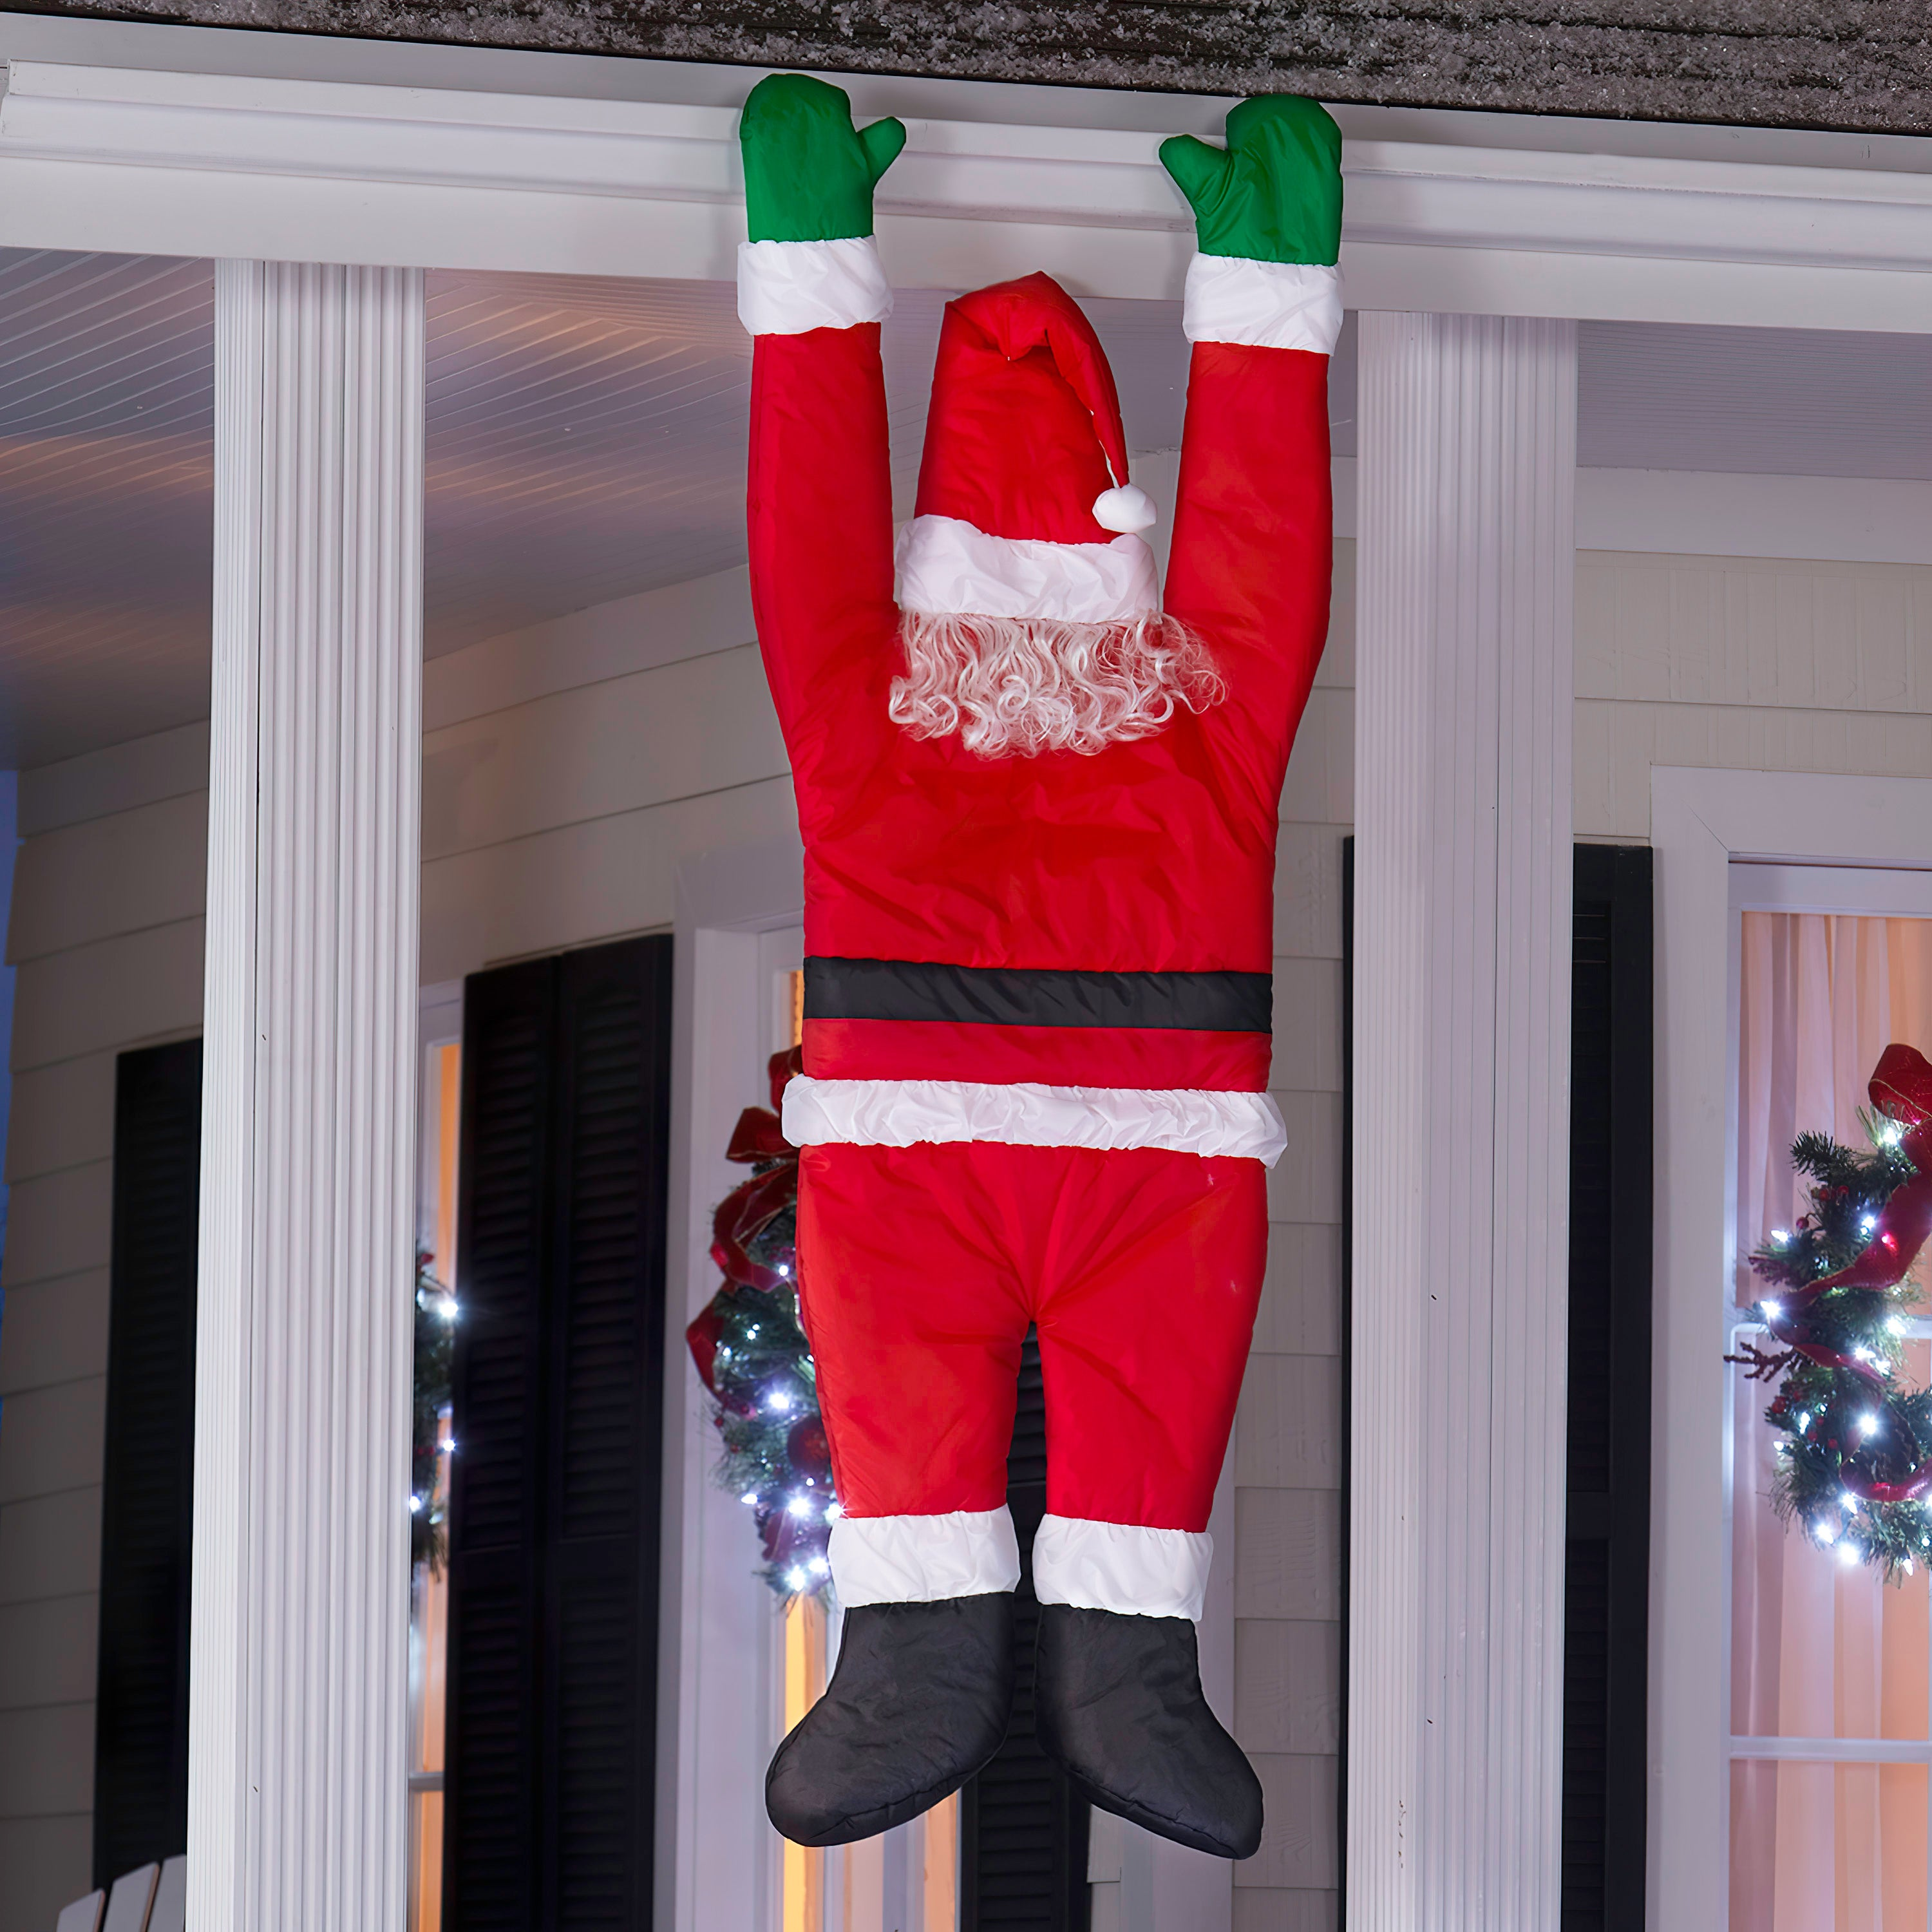 5.5' Season's Greeters-Santa Hanging From Gutter